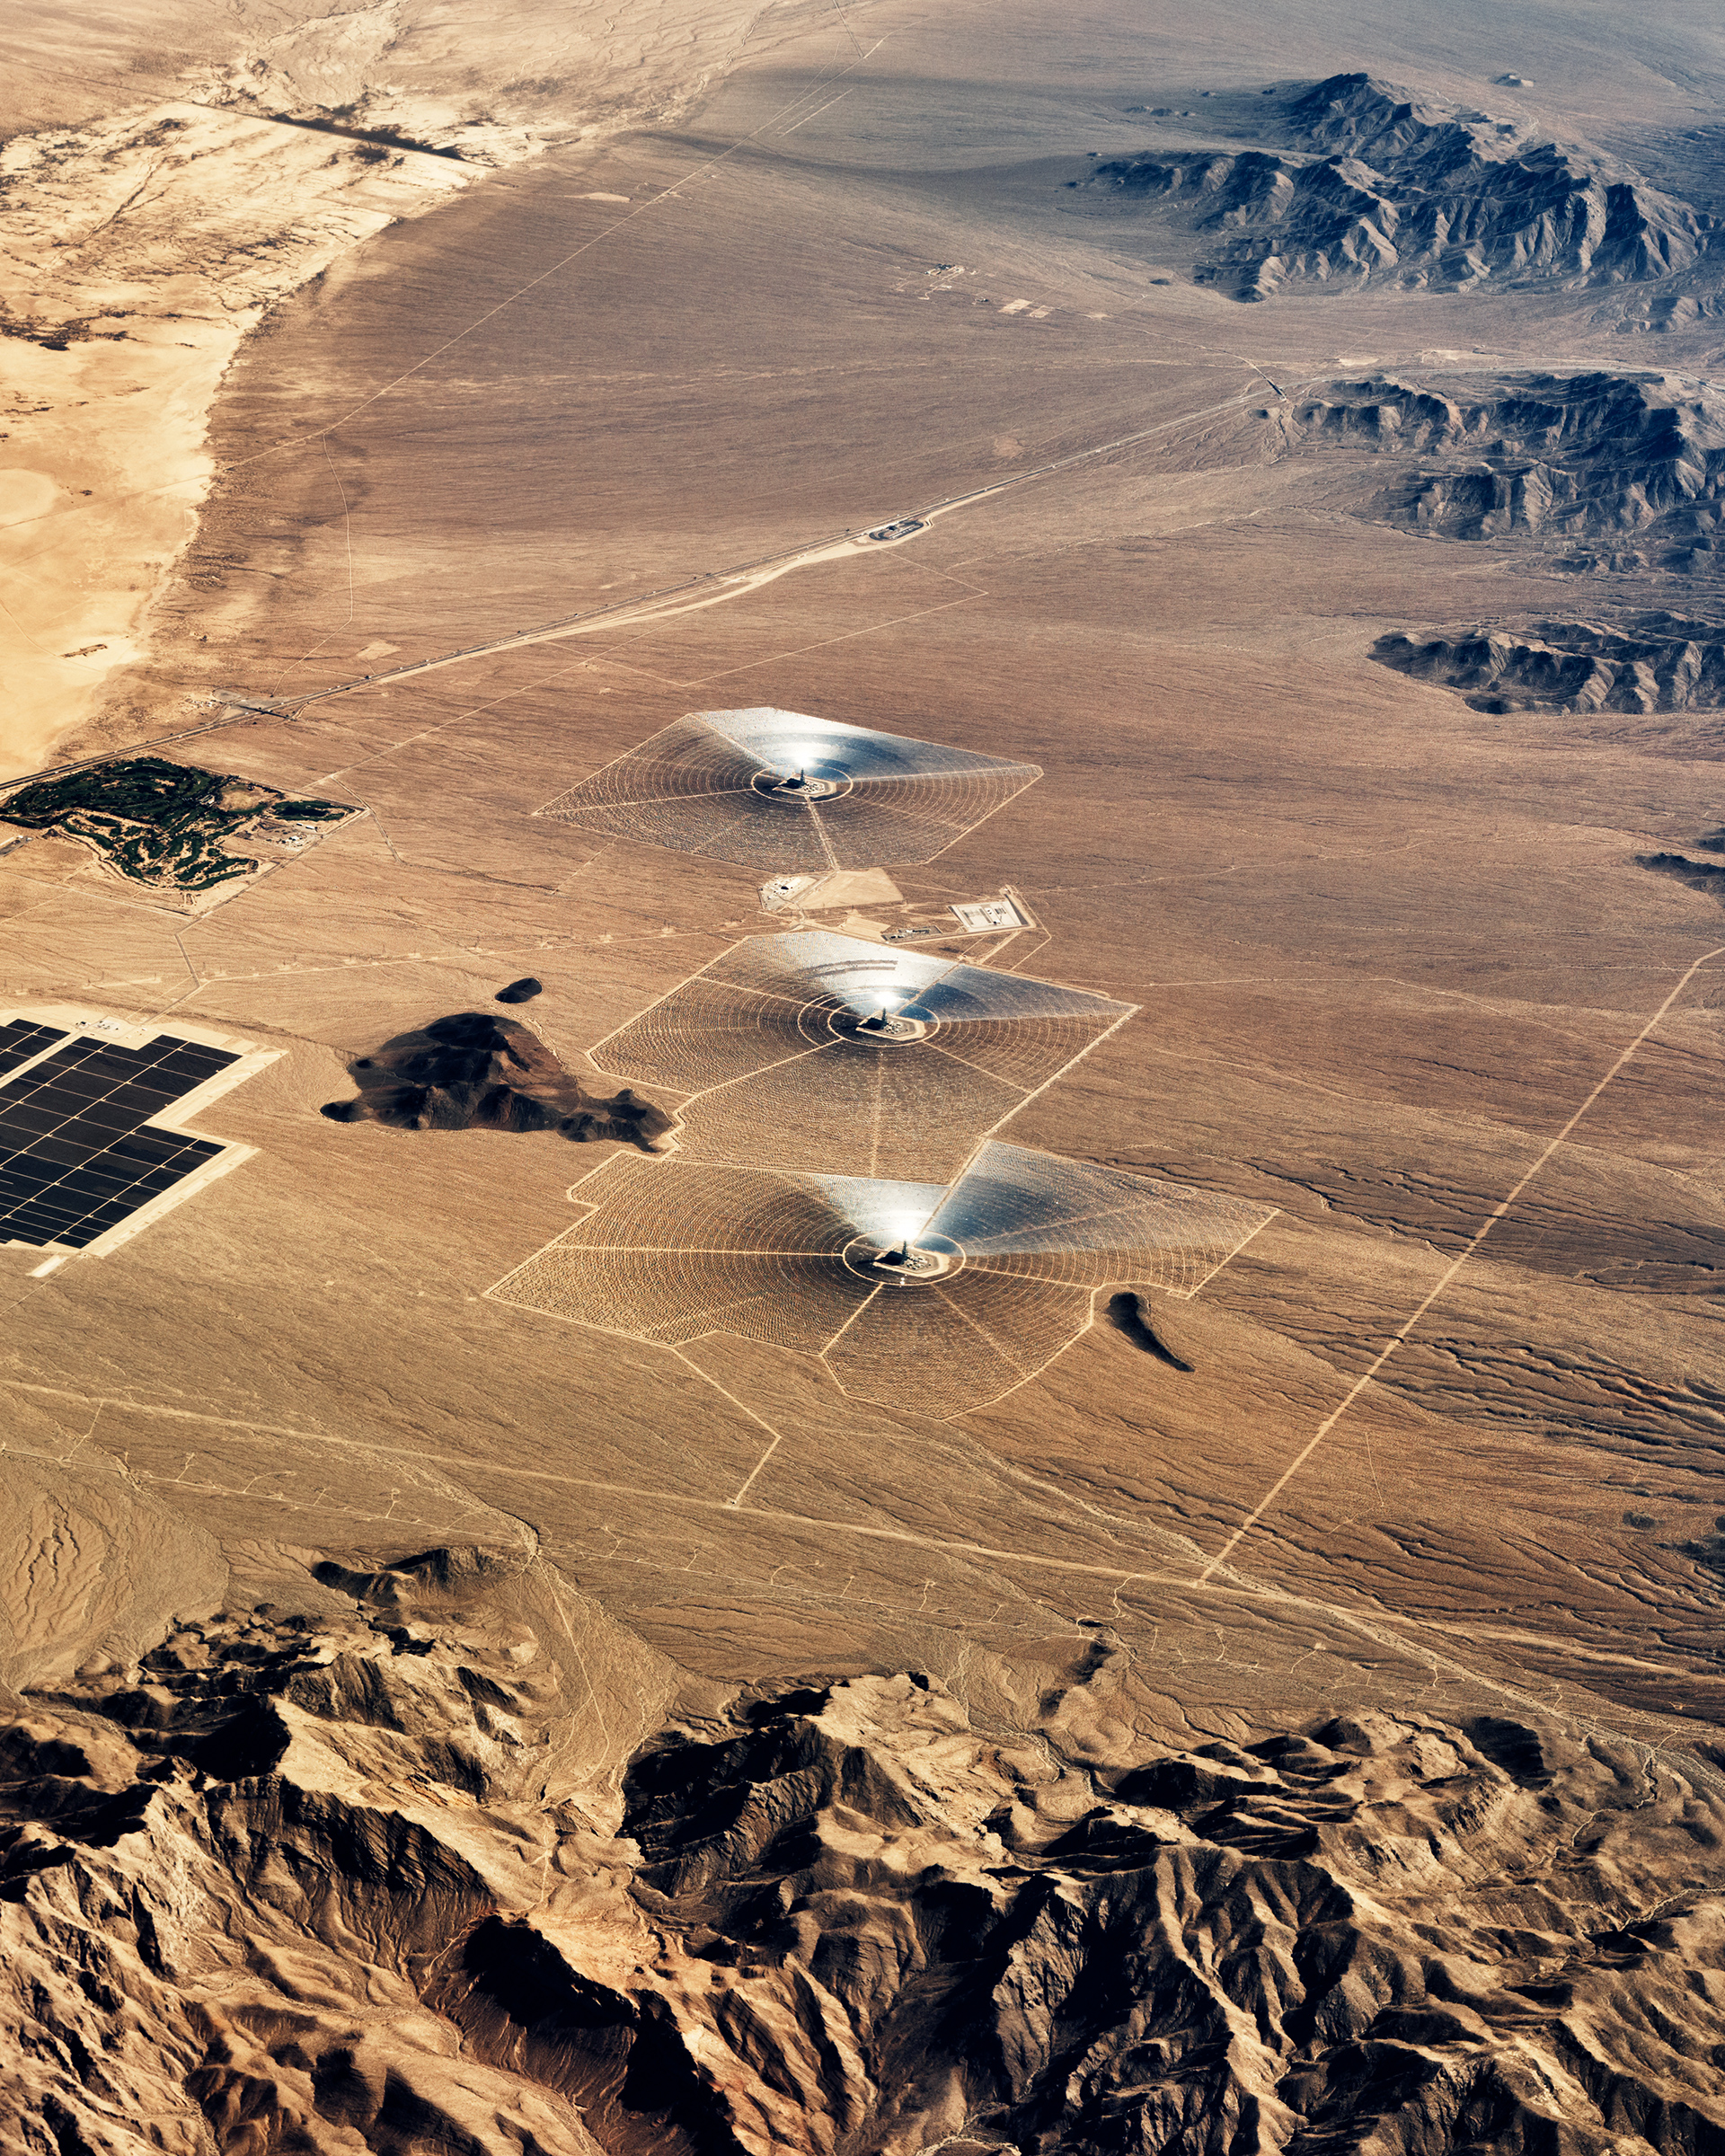 Aerial view of the Ivanpah solar power plant, located in California near the border with Nevada.